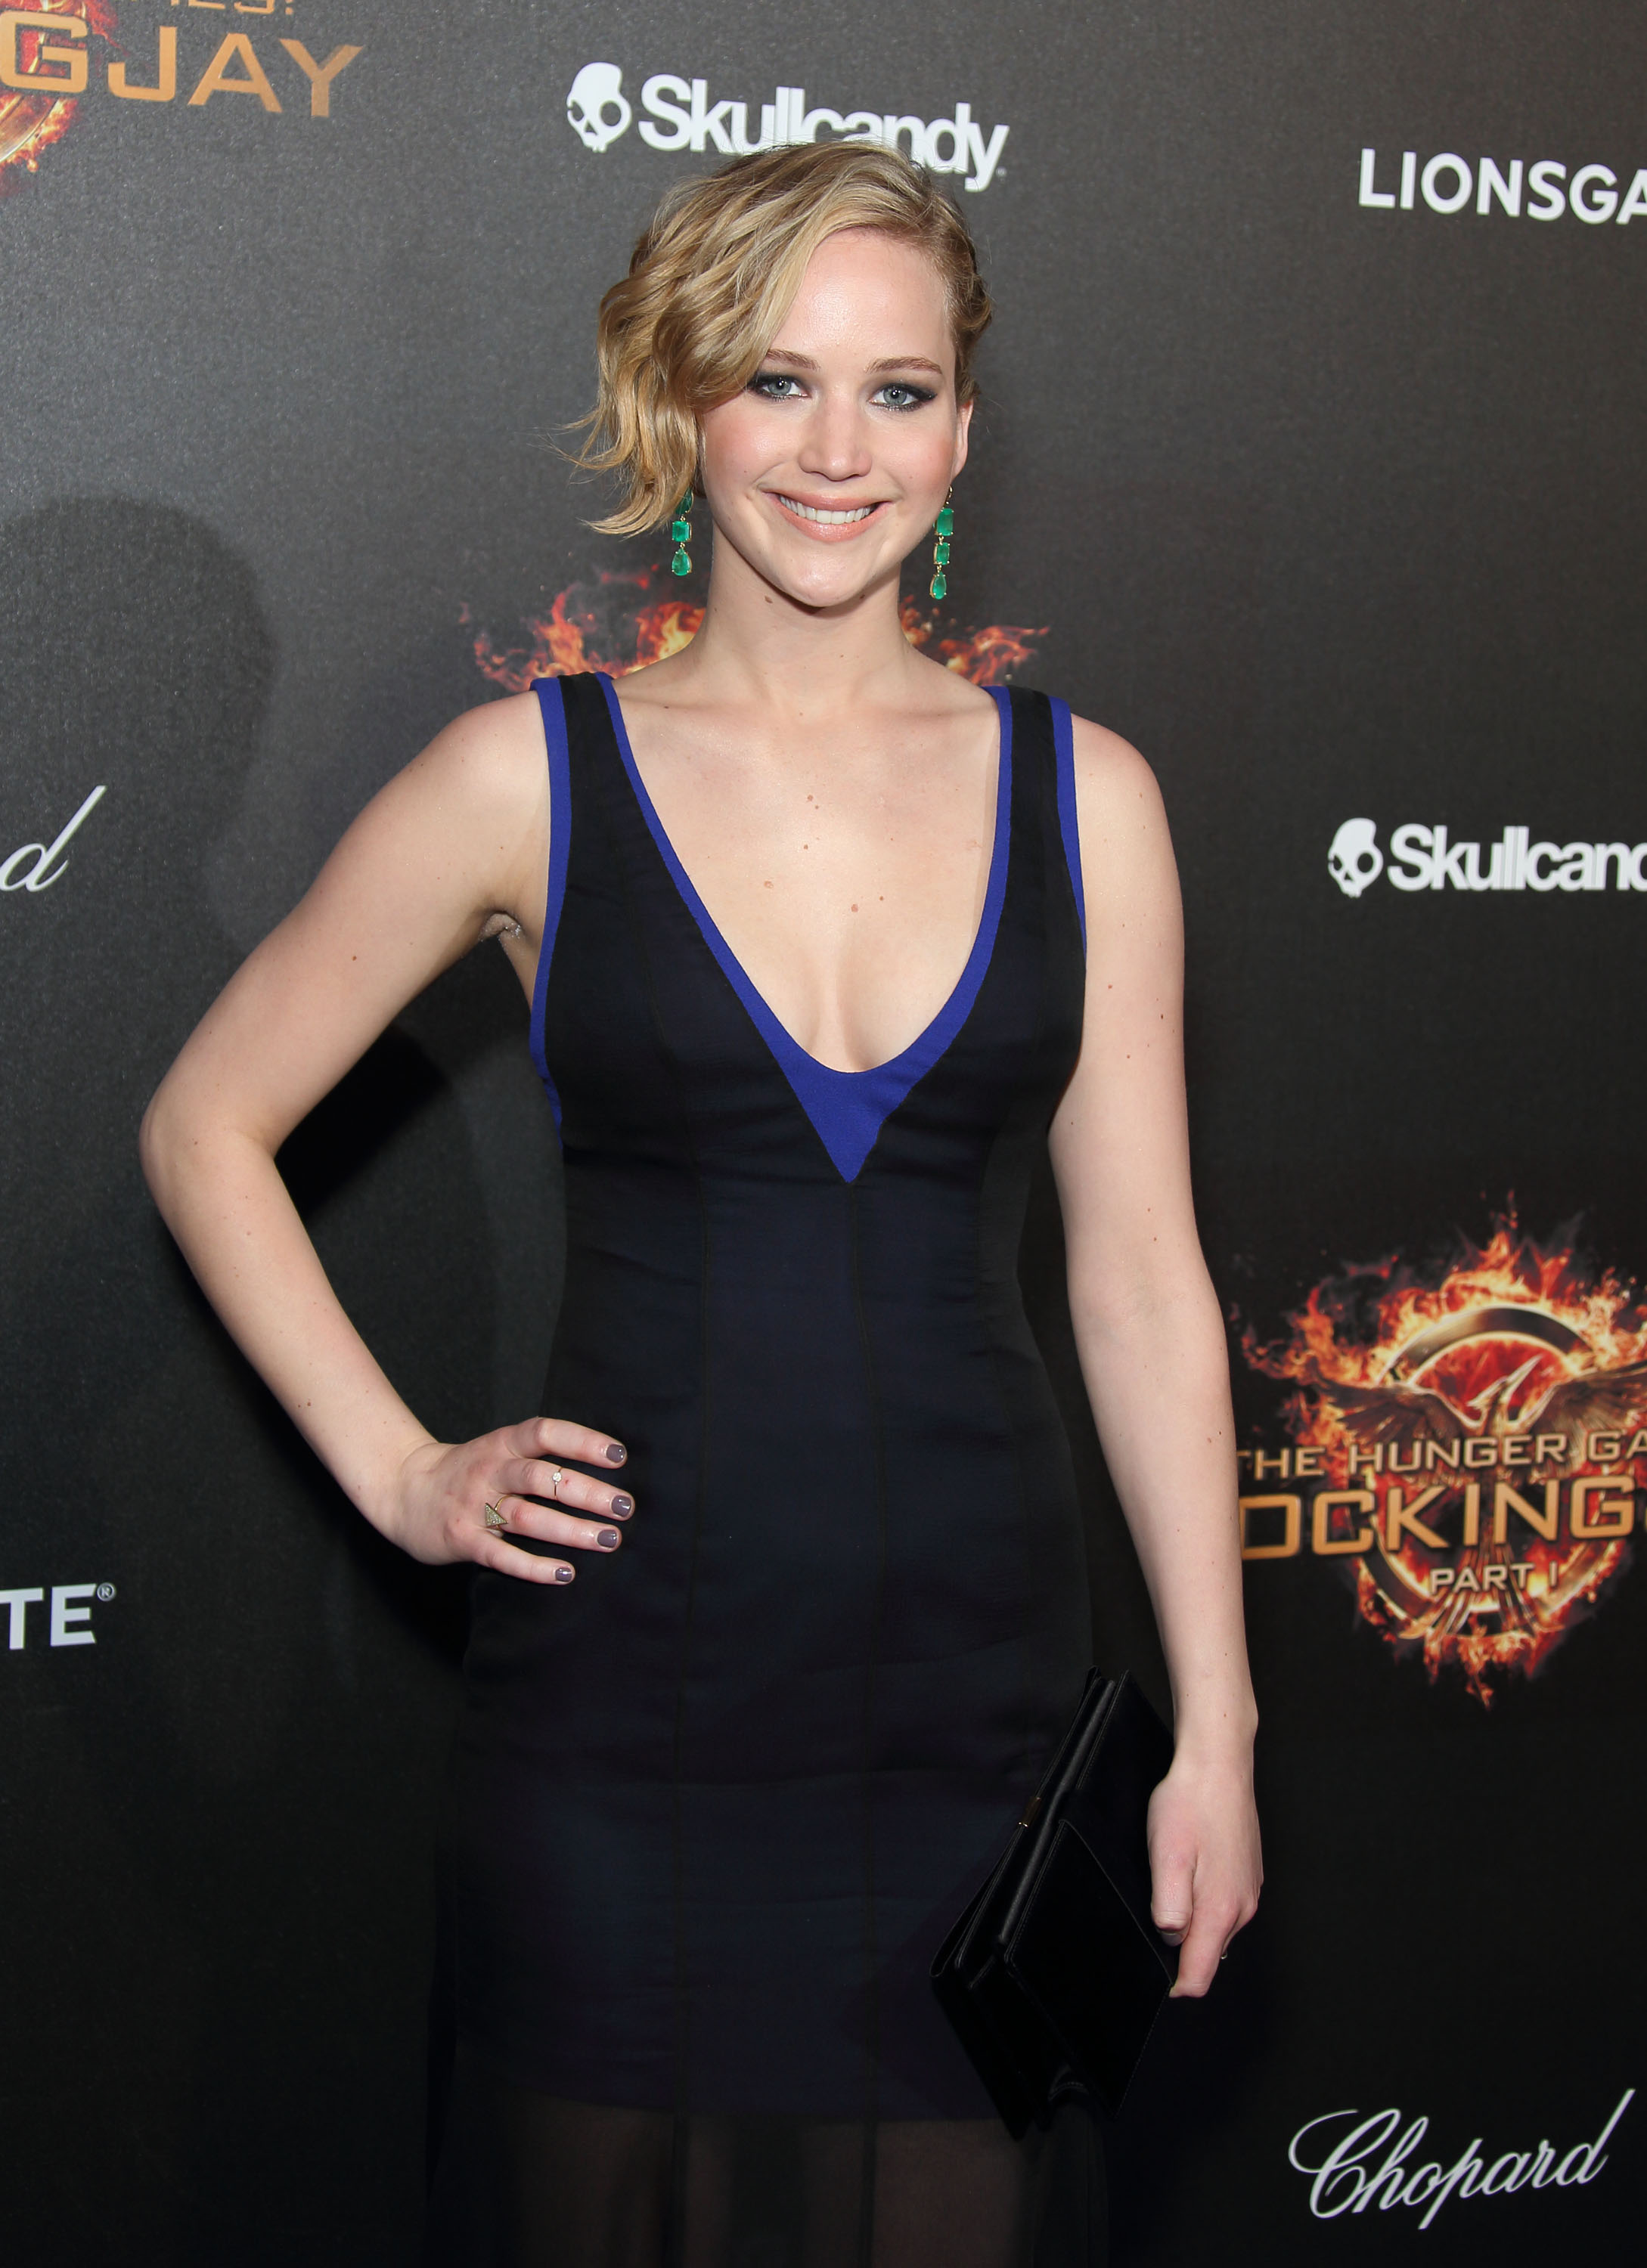 Jennifer Lawrence attends the  The Hunger Games: Mockingjay Part 1   party  at the 67th Annual Cannes Film Festival on May 17, 2014 in Cannes, France.